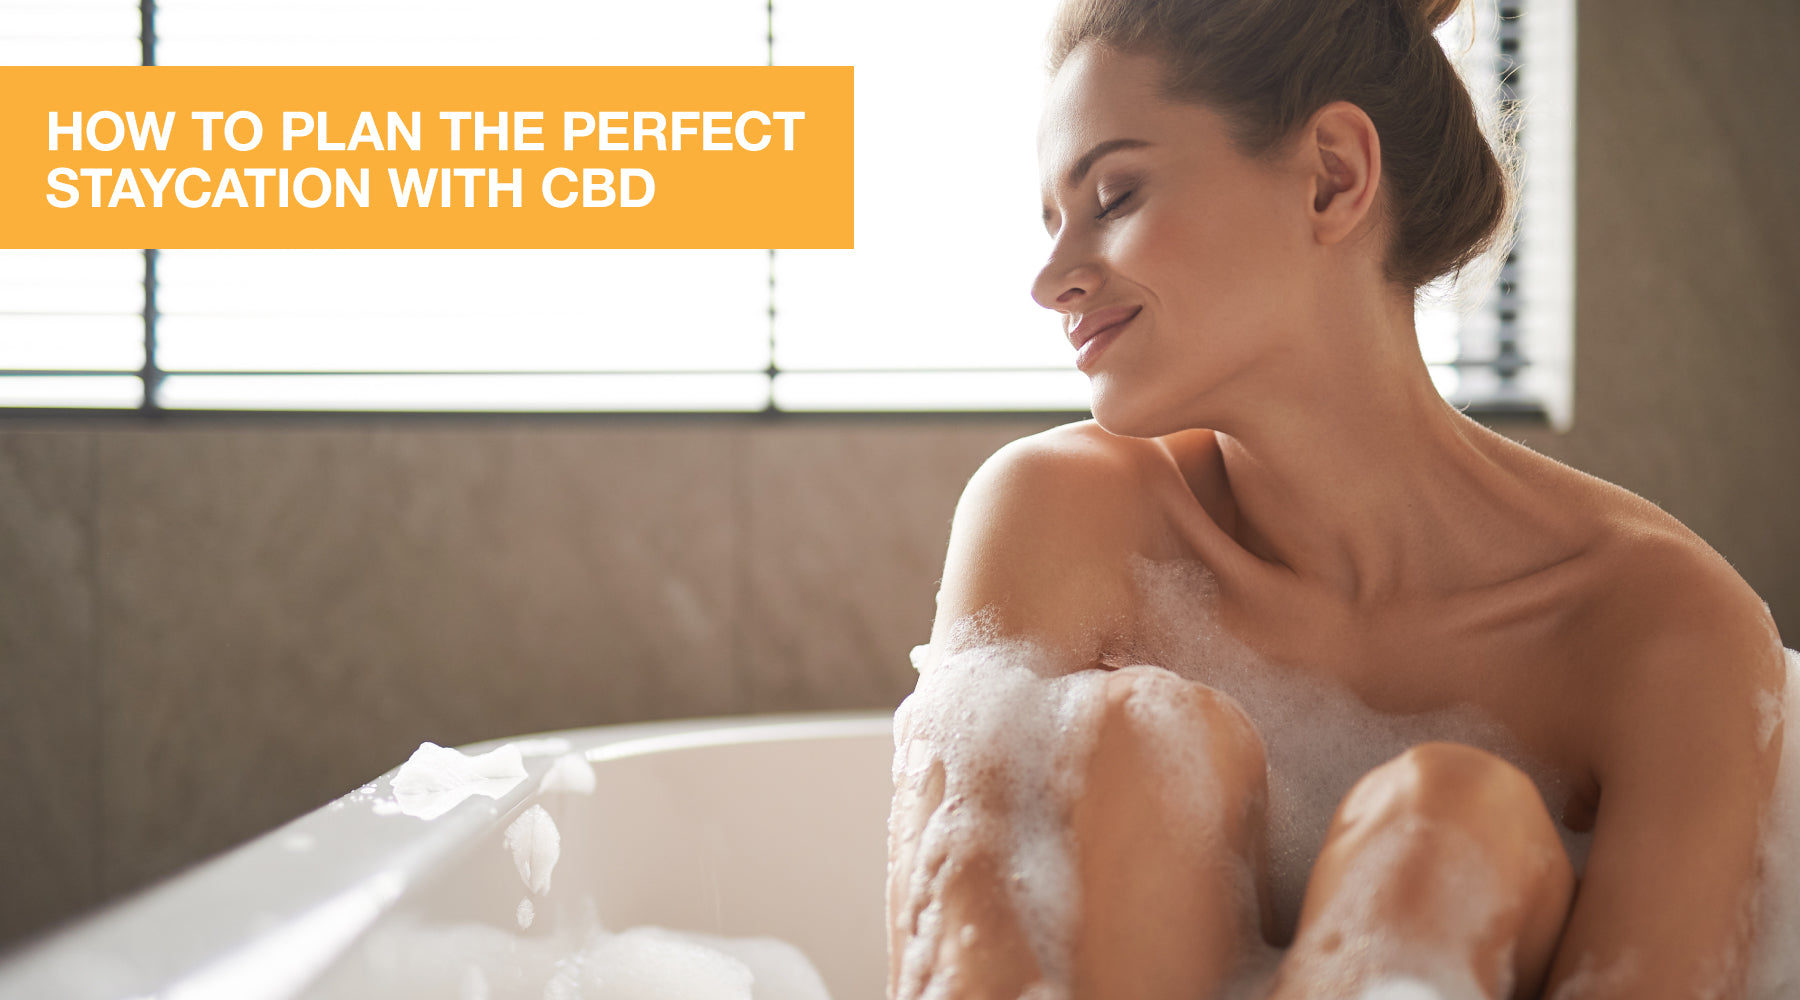 How to Plan the Perfect Staycation and Avoid Cabin Fever with CBD